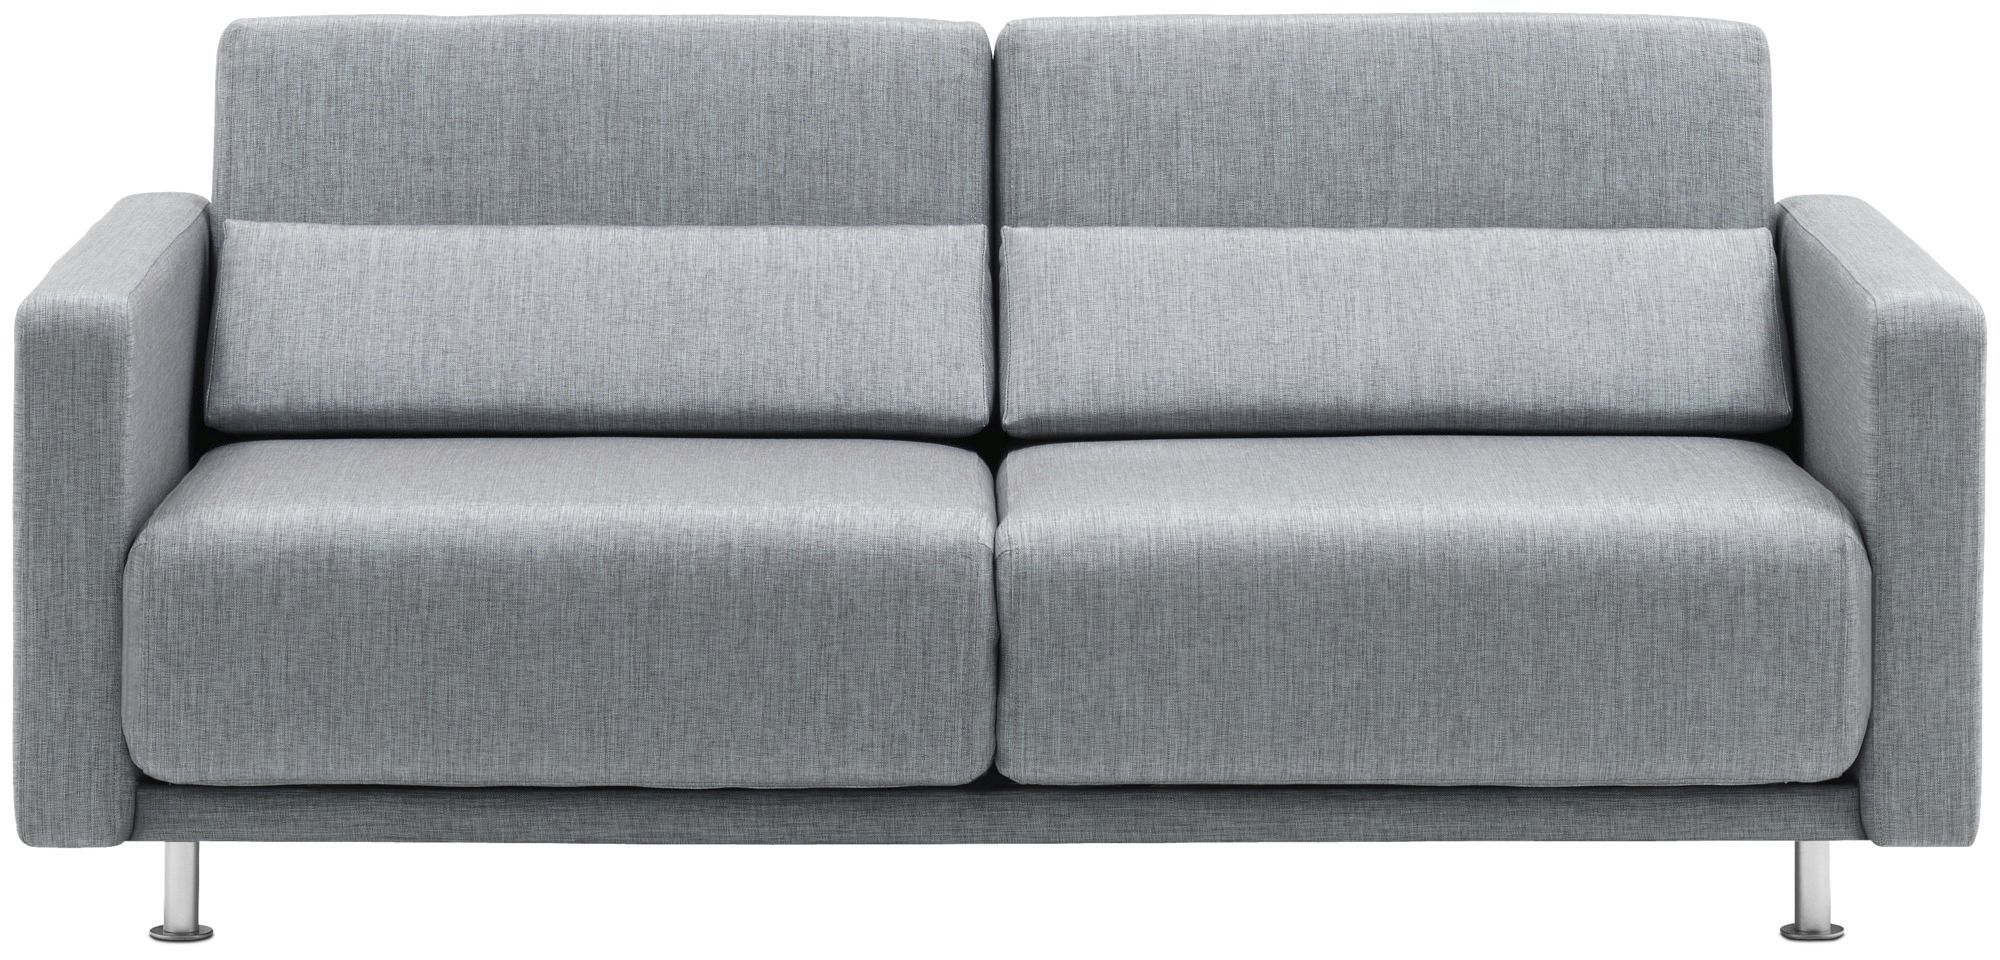 Boconcept Sofa Sofa Bed Contemporary Fabric 2 5 Seater